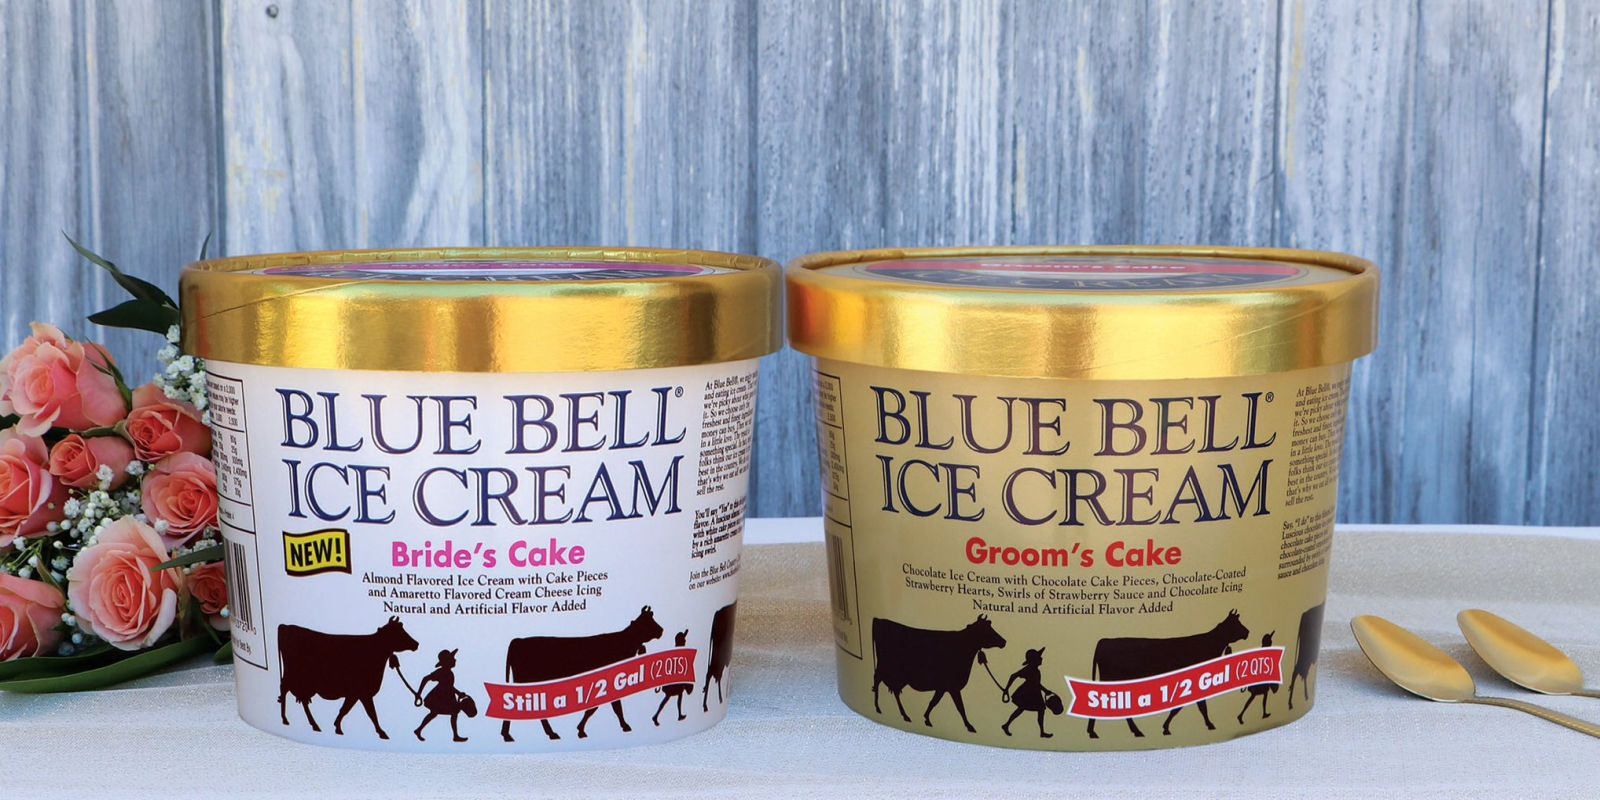 Blue Bell Introduces New Wedding CakeInspired Ice Cream Brings